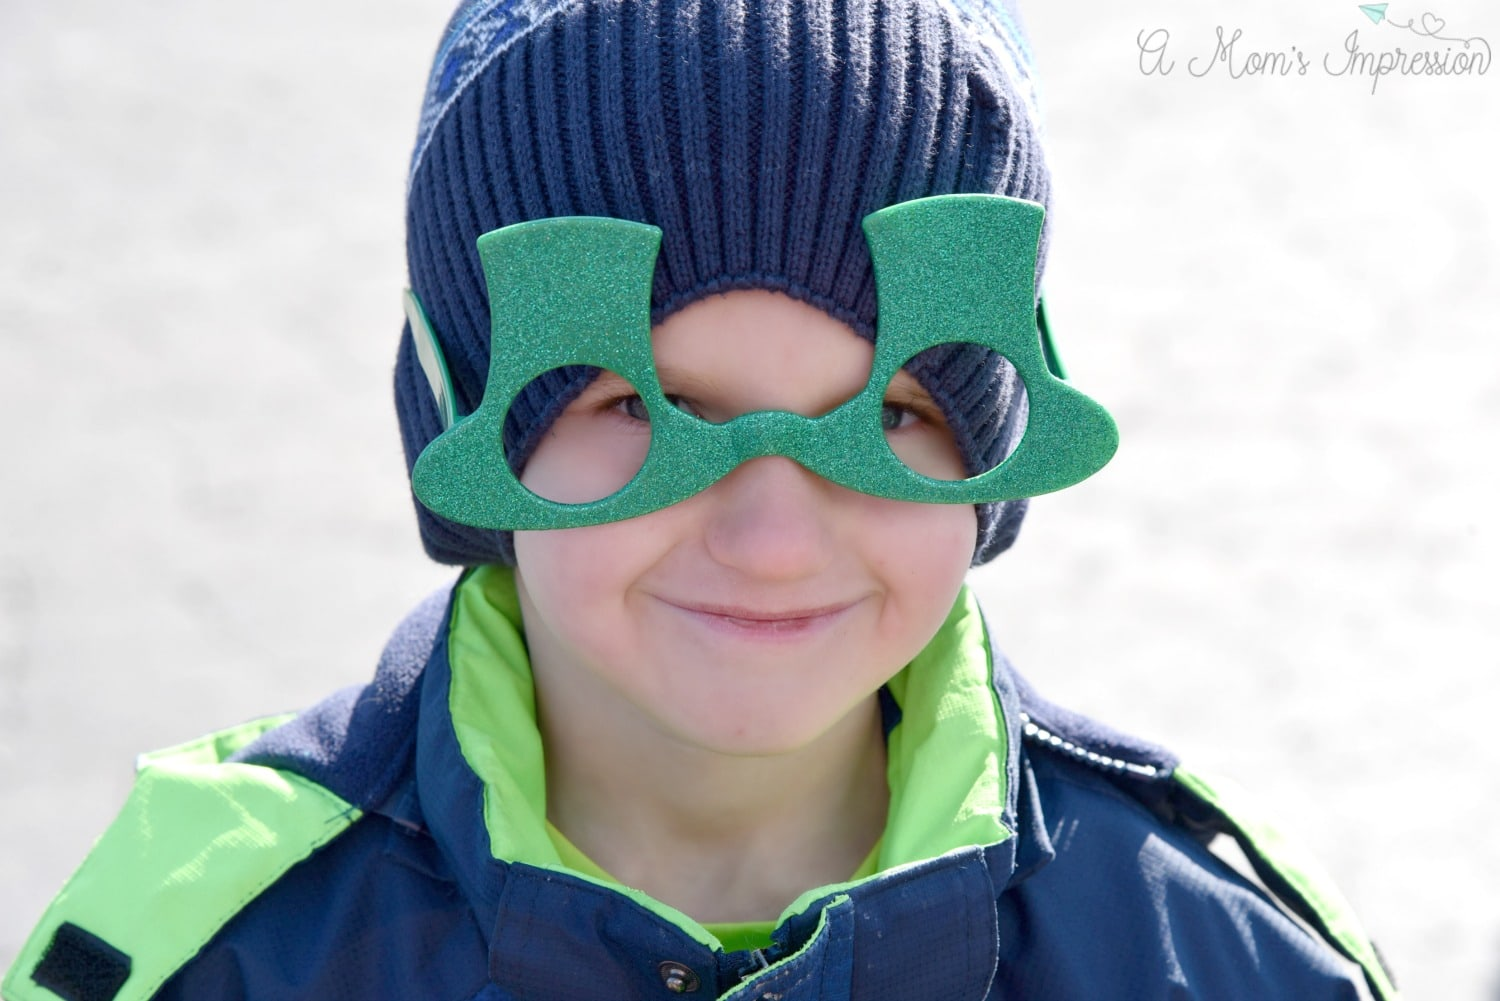 a boy with irish glasses on